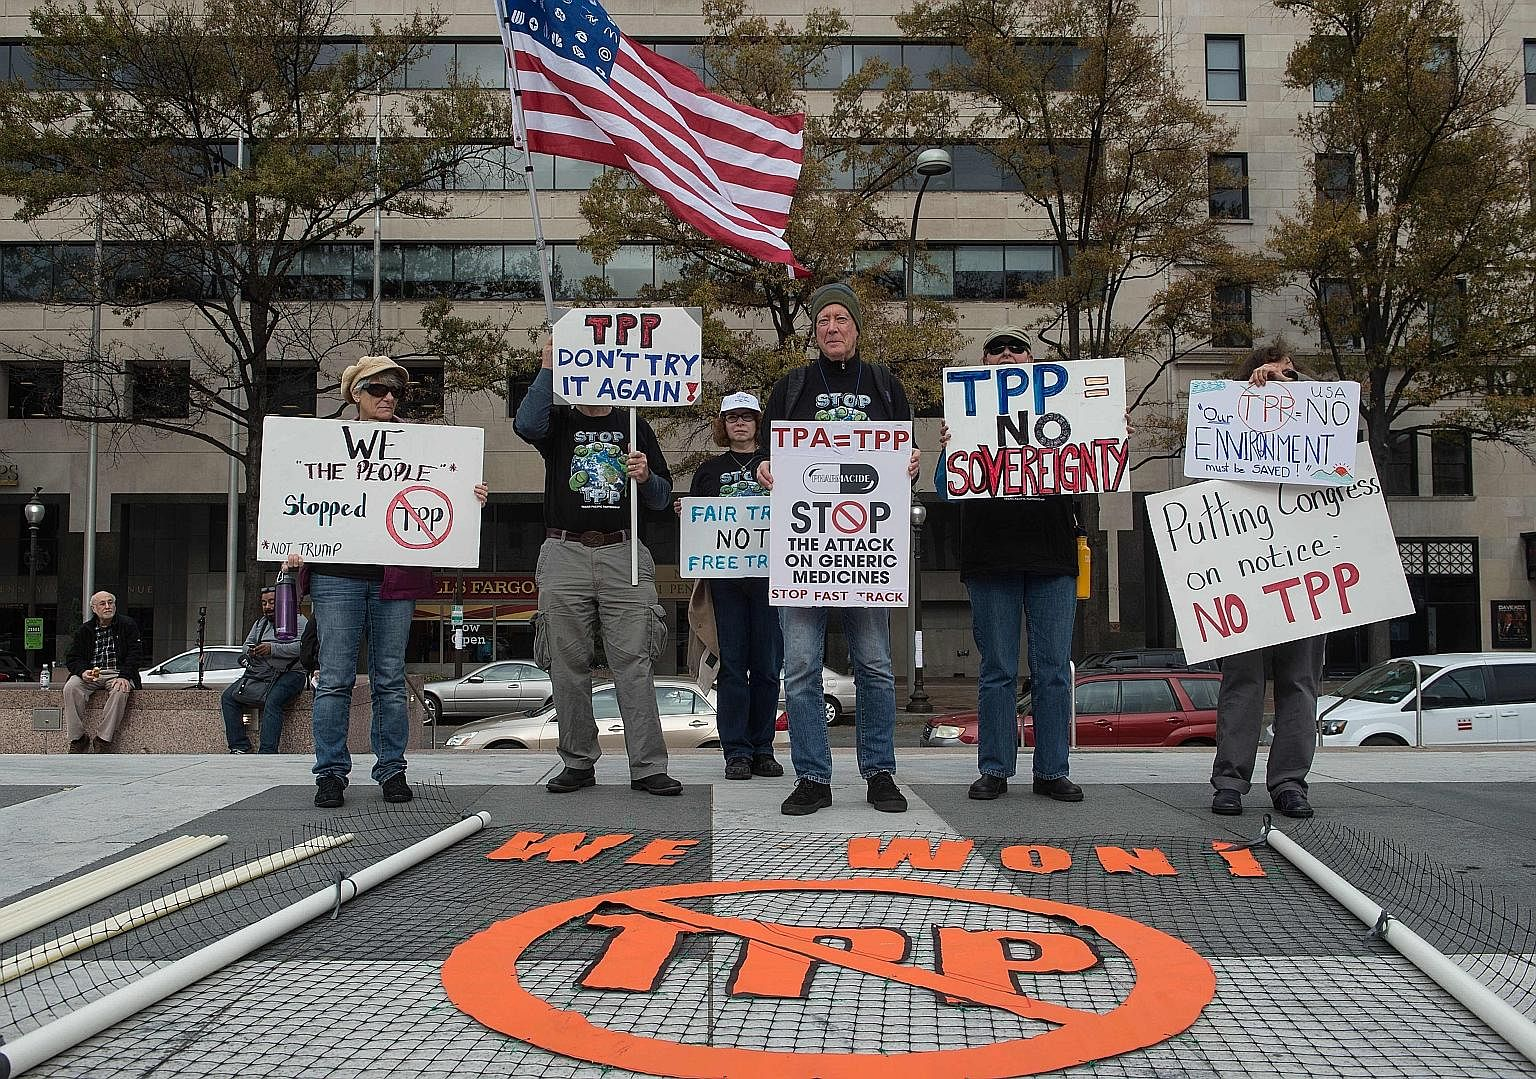 People demonstrating against the Trans-Pacific Partnership agreement in Washington, DC, on Monday. The Obama administration said last week that it would no longer try to get the trade deal through Congress, leaving the issue to President-elect Trump.